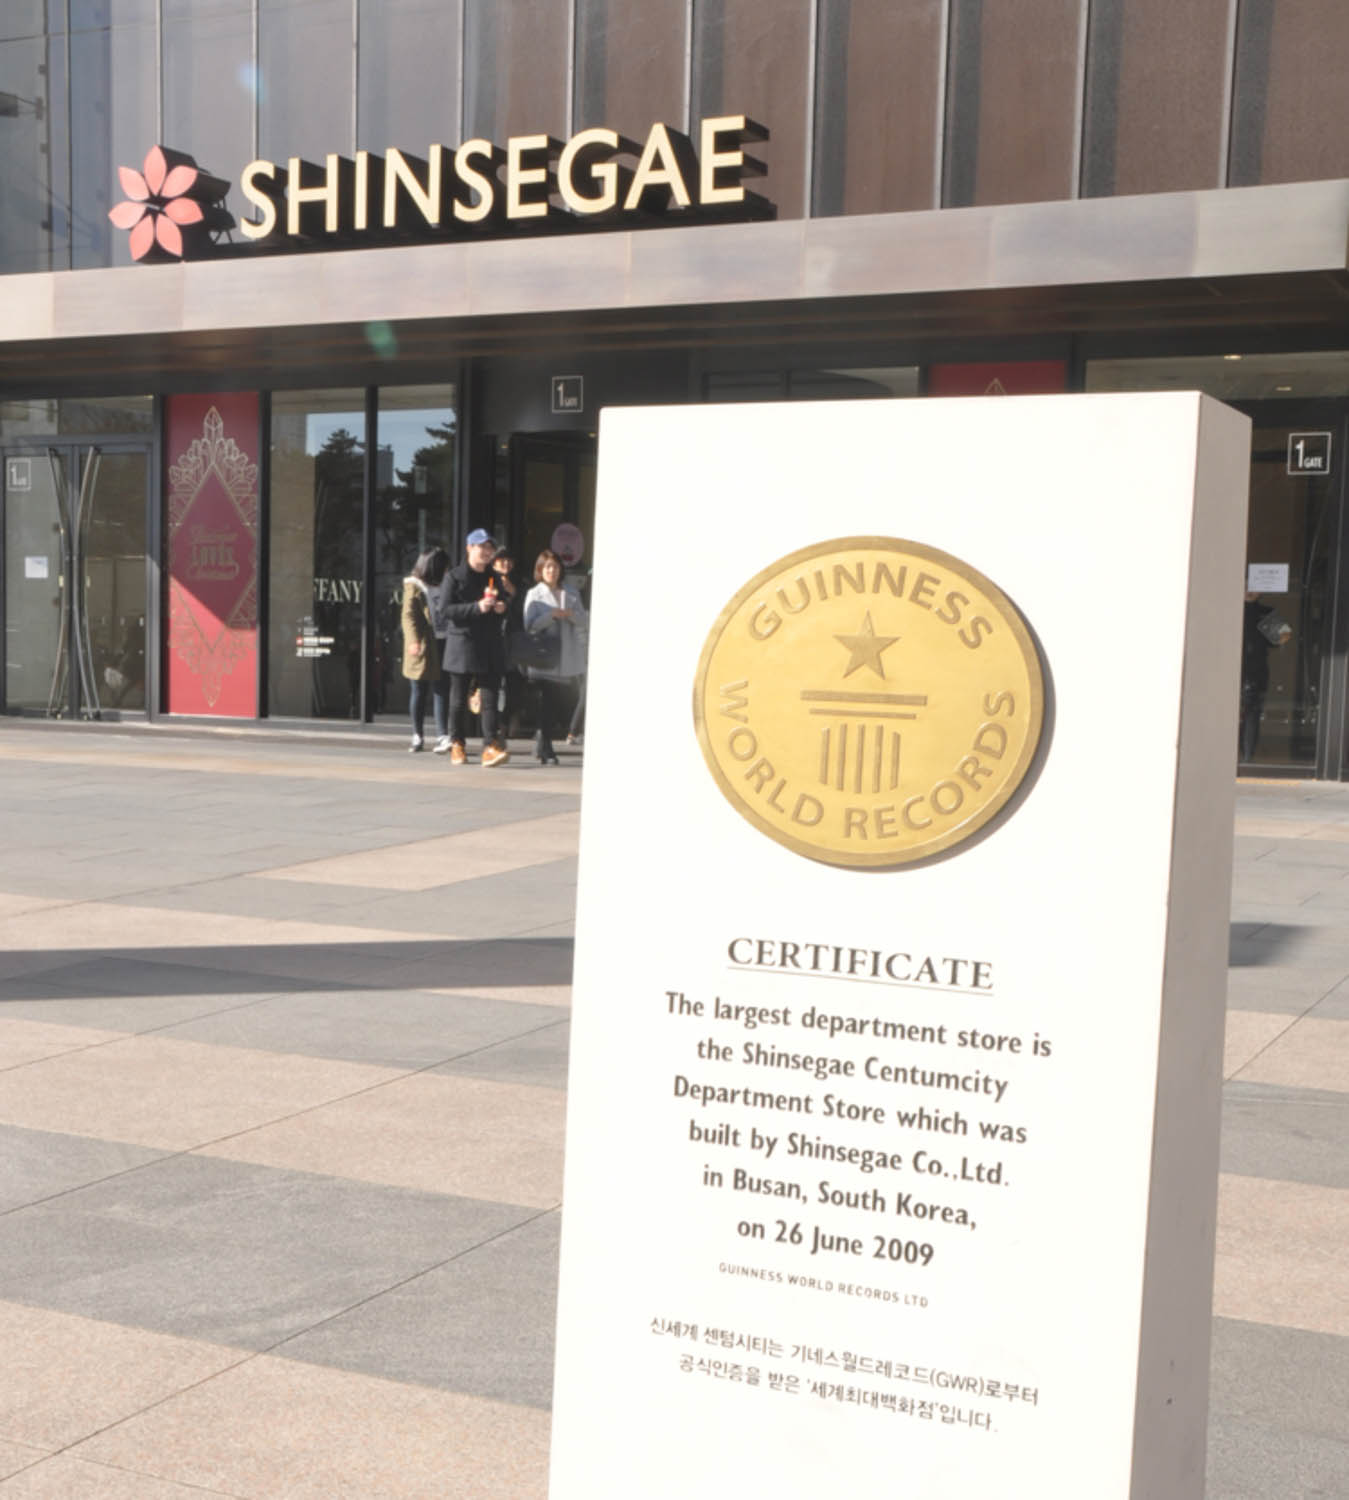 Shinsegae earned a Guinness World Record for being the largest department store in the world!